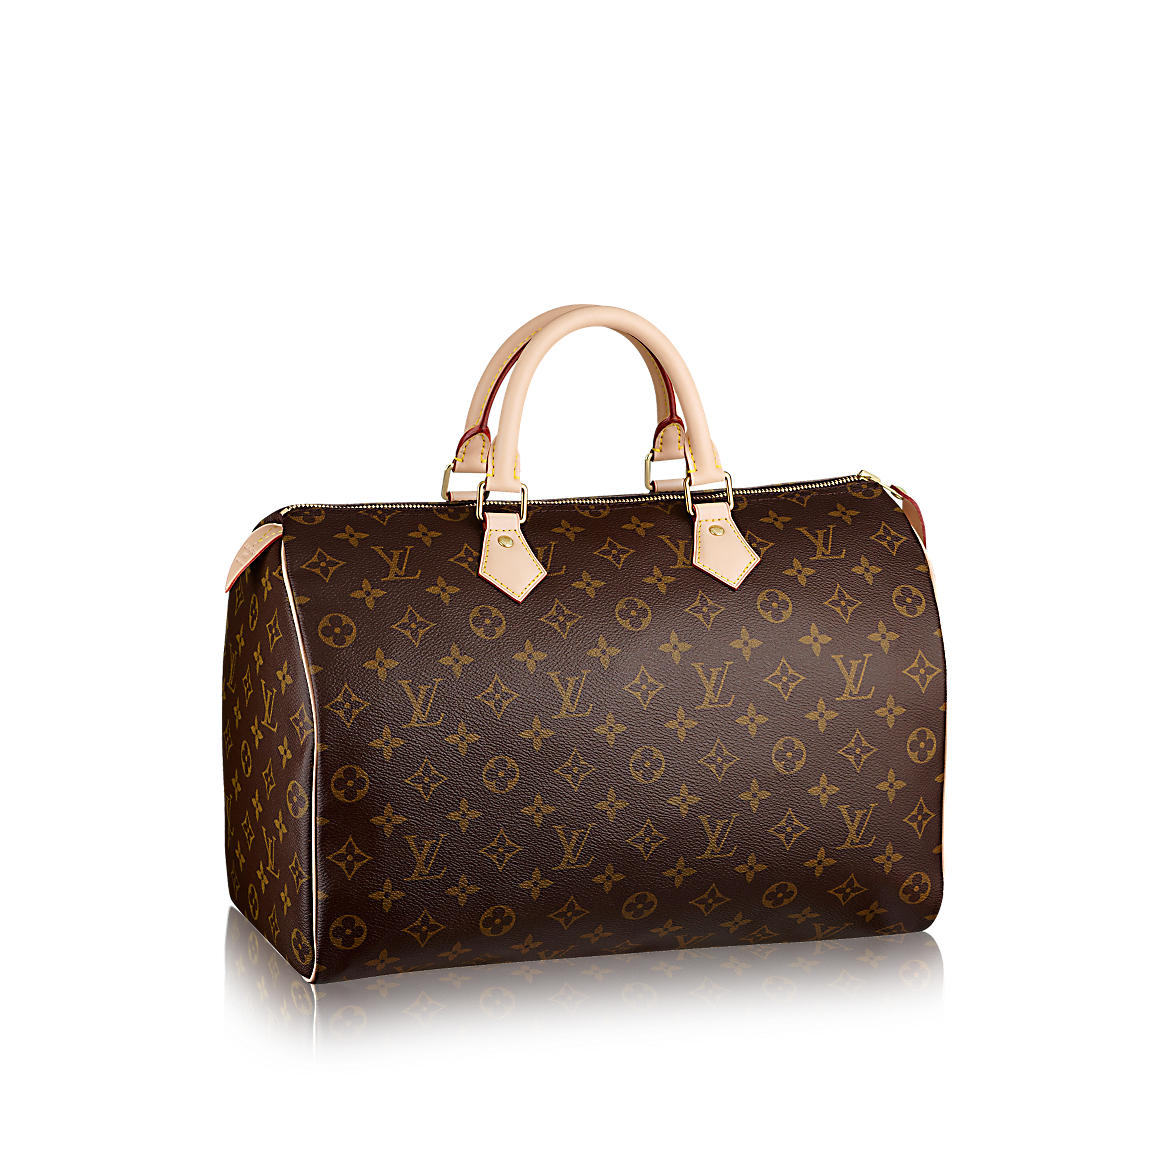 Louis Vuitton Speedy 35 Monogram Bag Purse